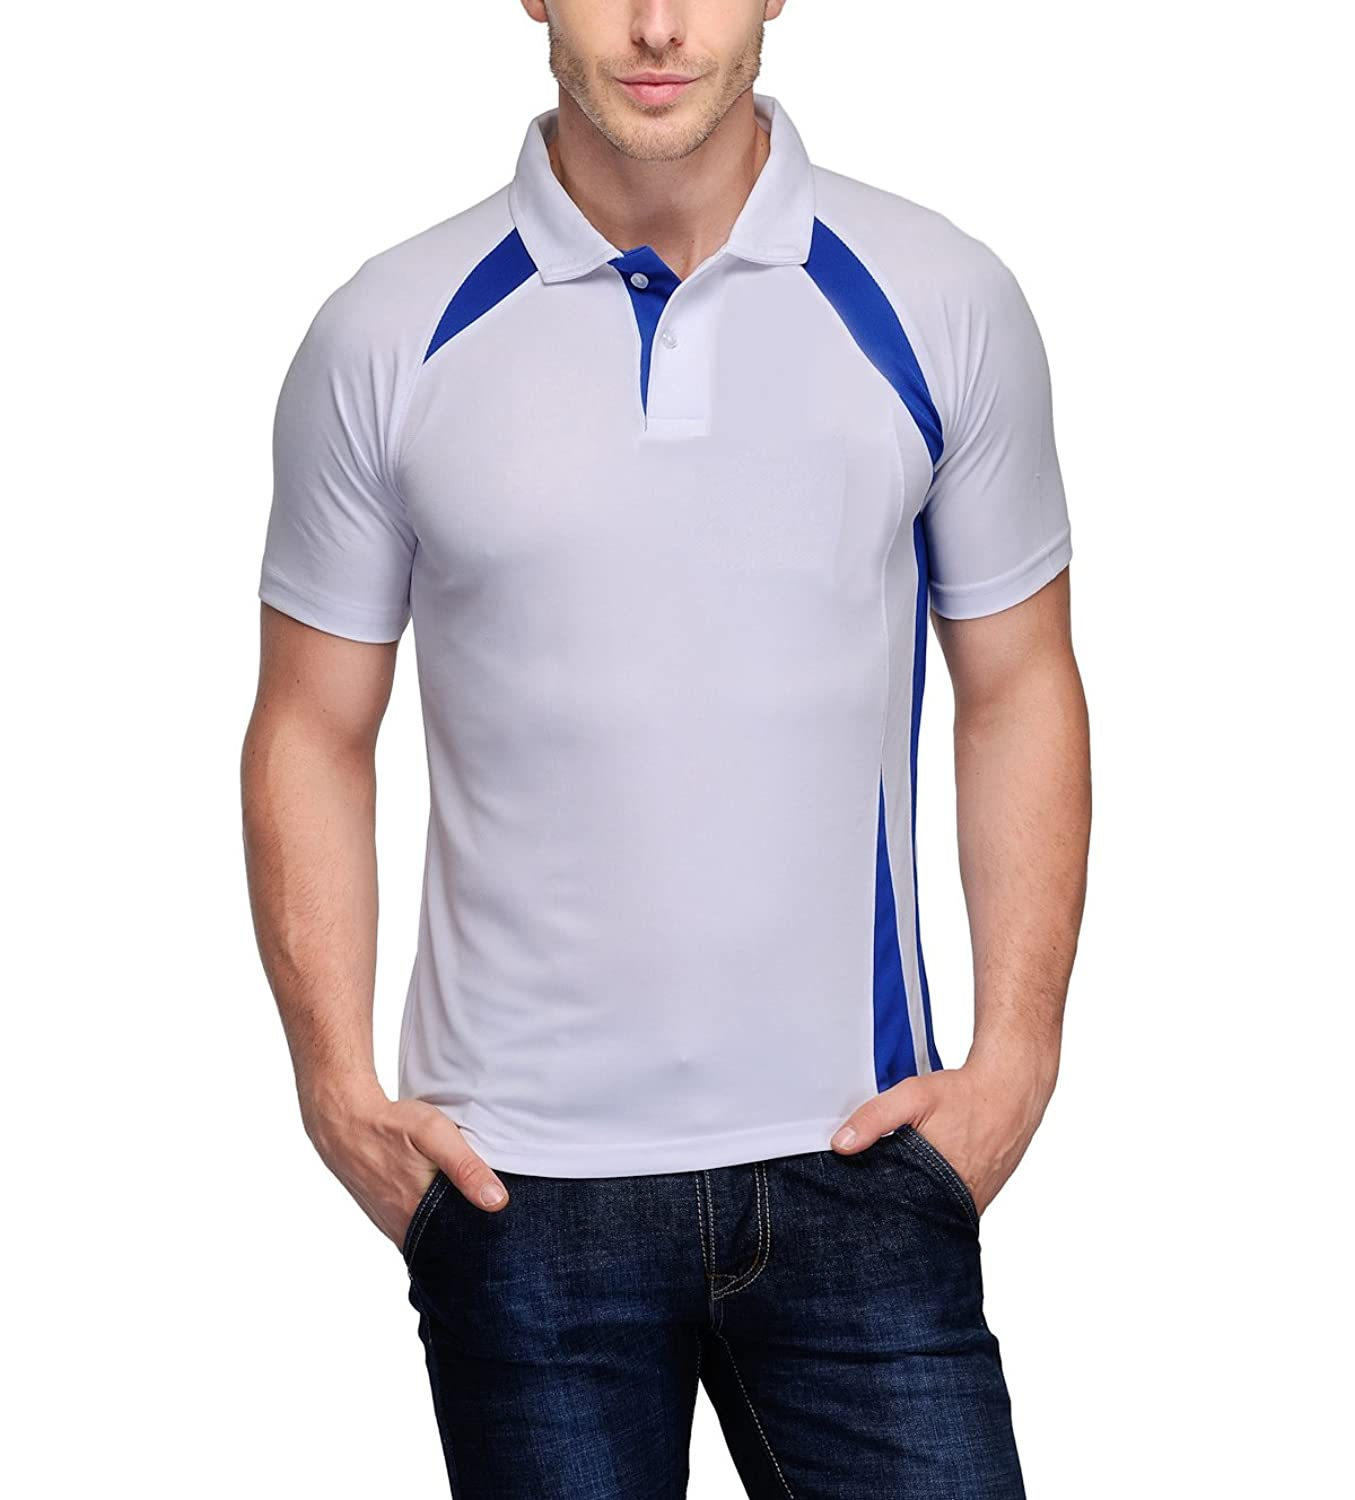 Scott International Clothing Minimum 70% Off from Rs. 199